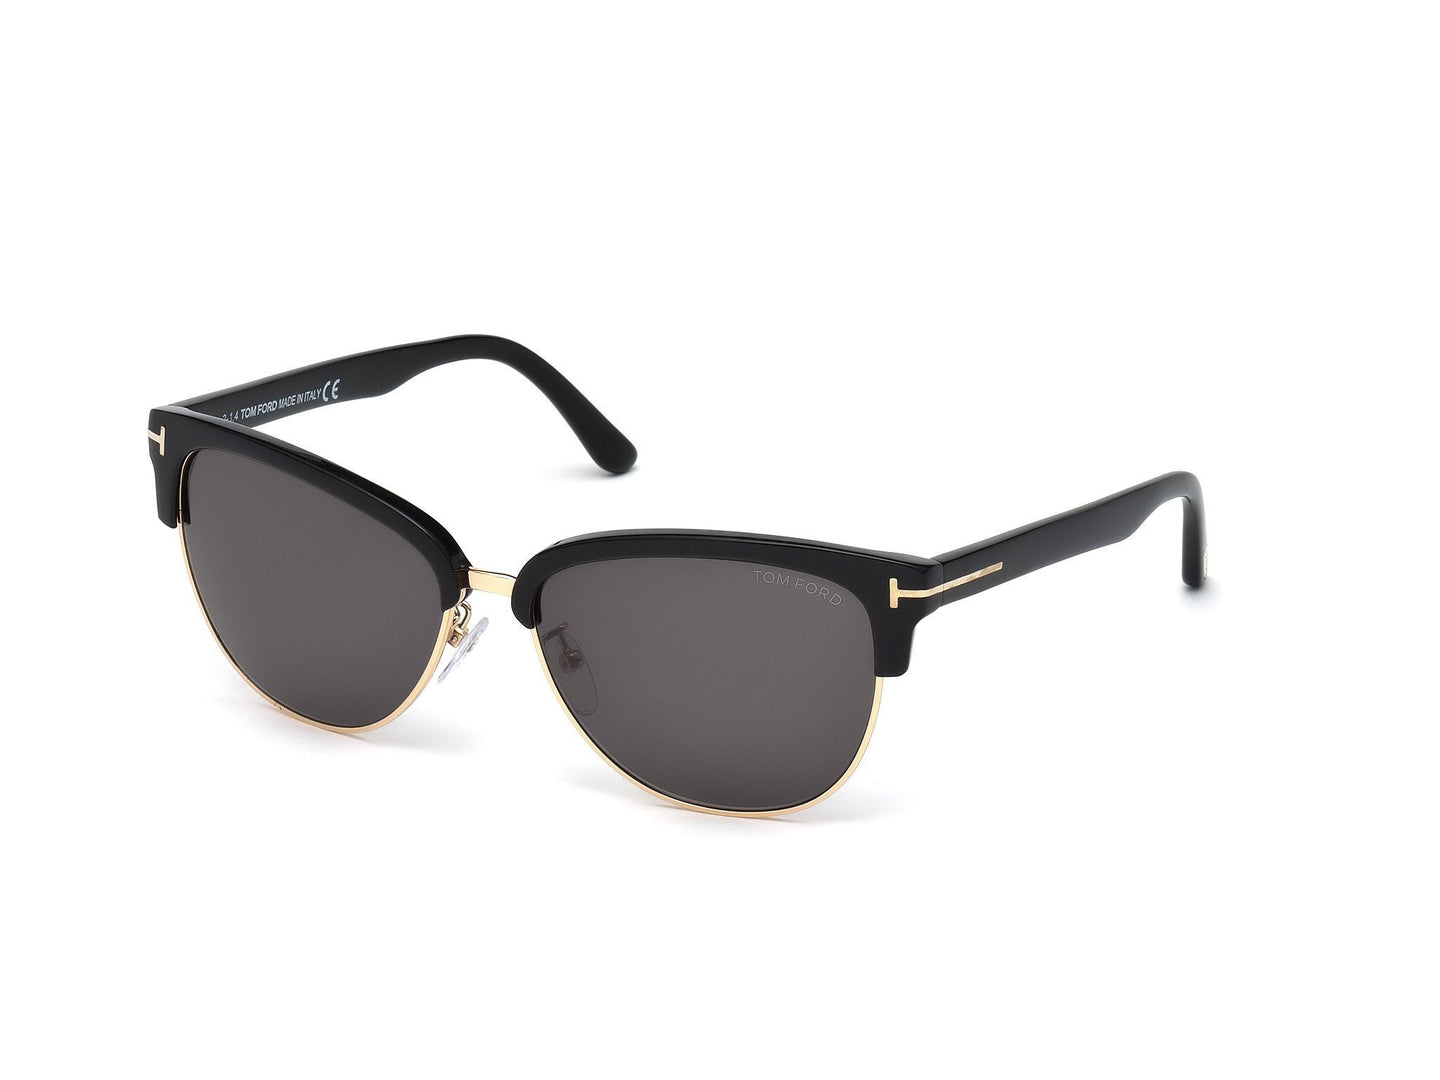 Tom Ford Sunglass-FT0368